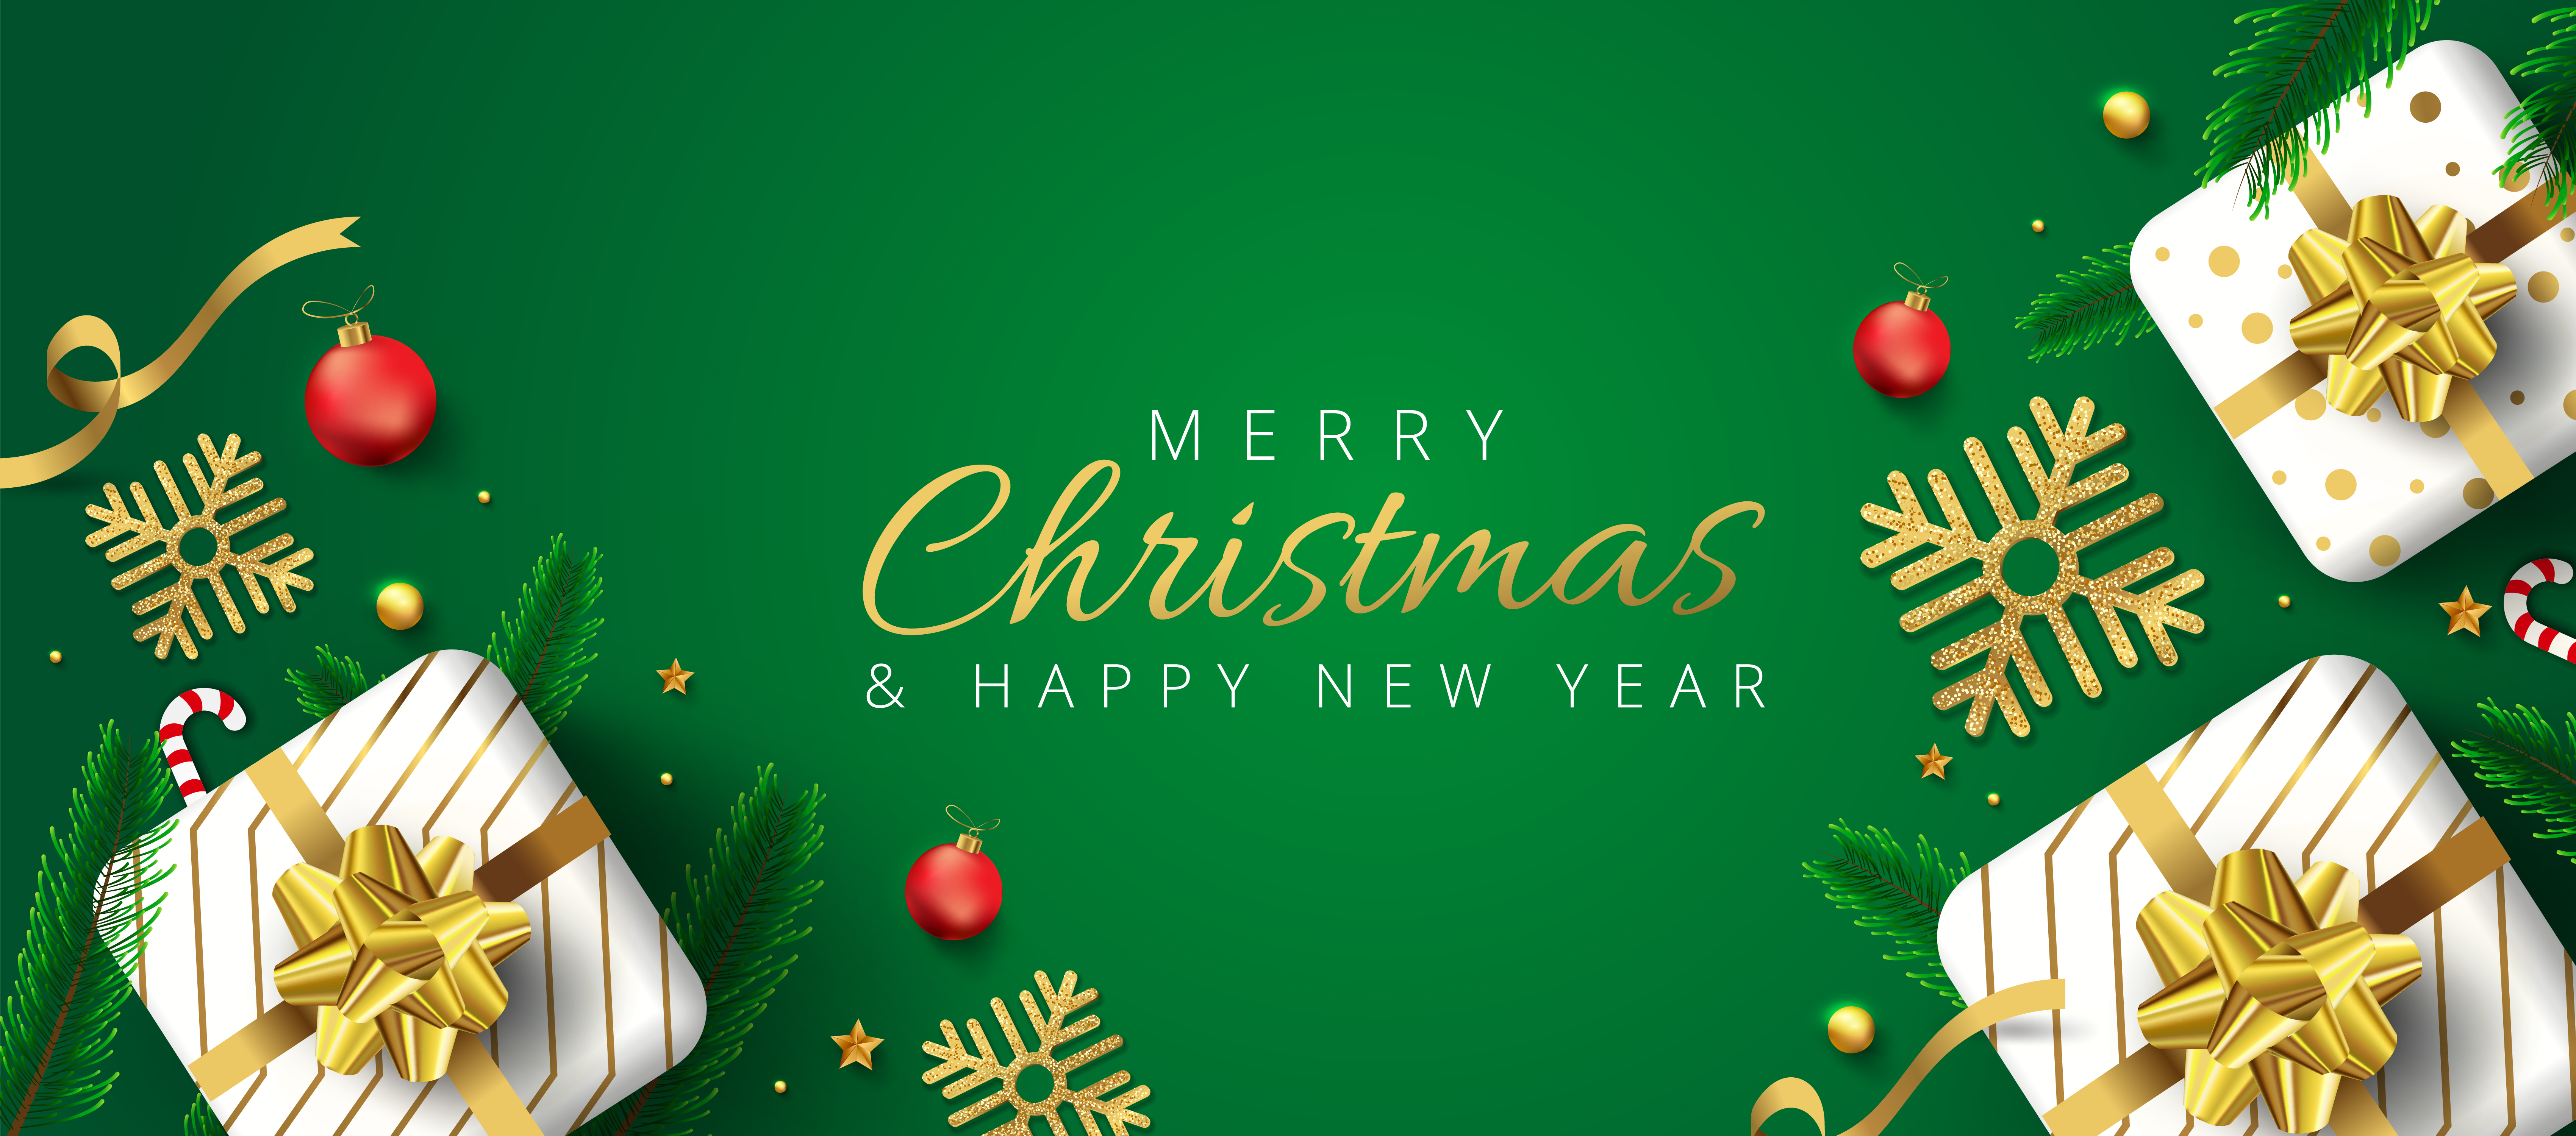 green christmas and new year header or banner download free vectors clipart graphics vector art vecteezy